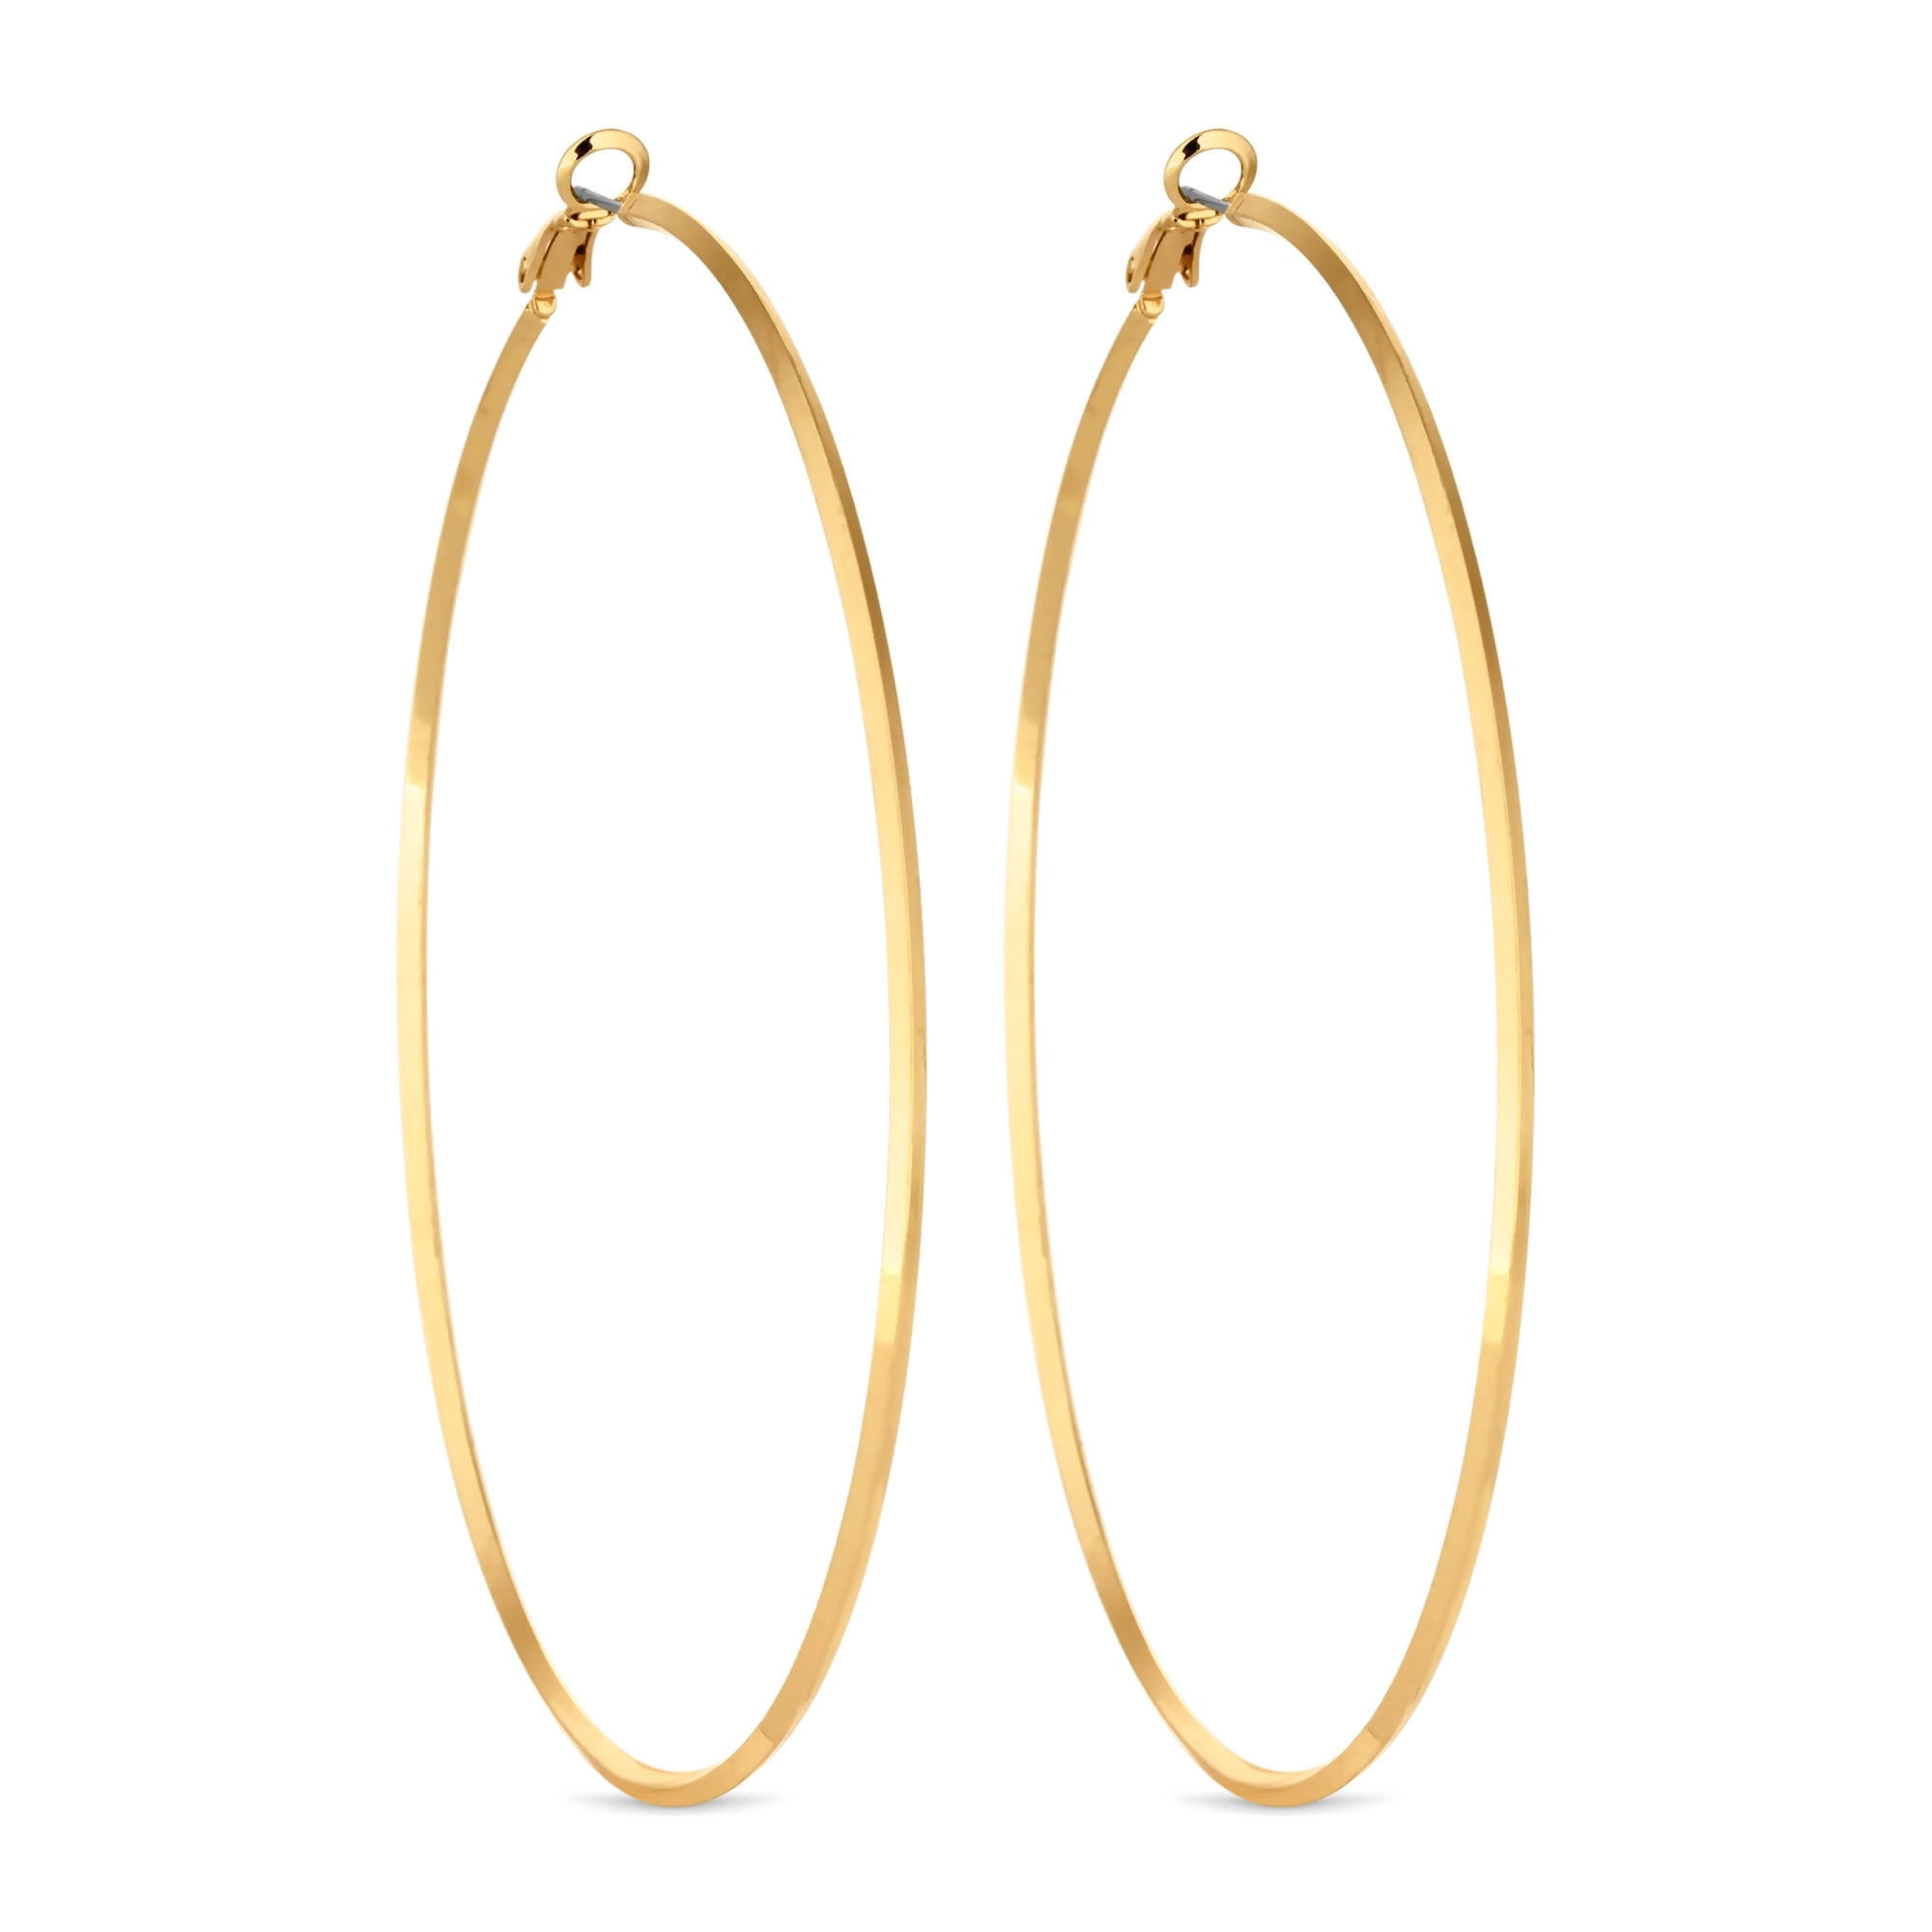 p sidebar dfch white jewellery hoop gold addthis sharing earrings